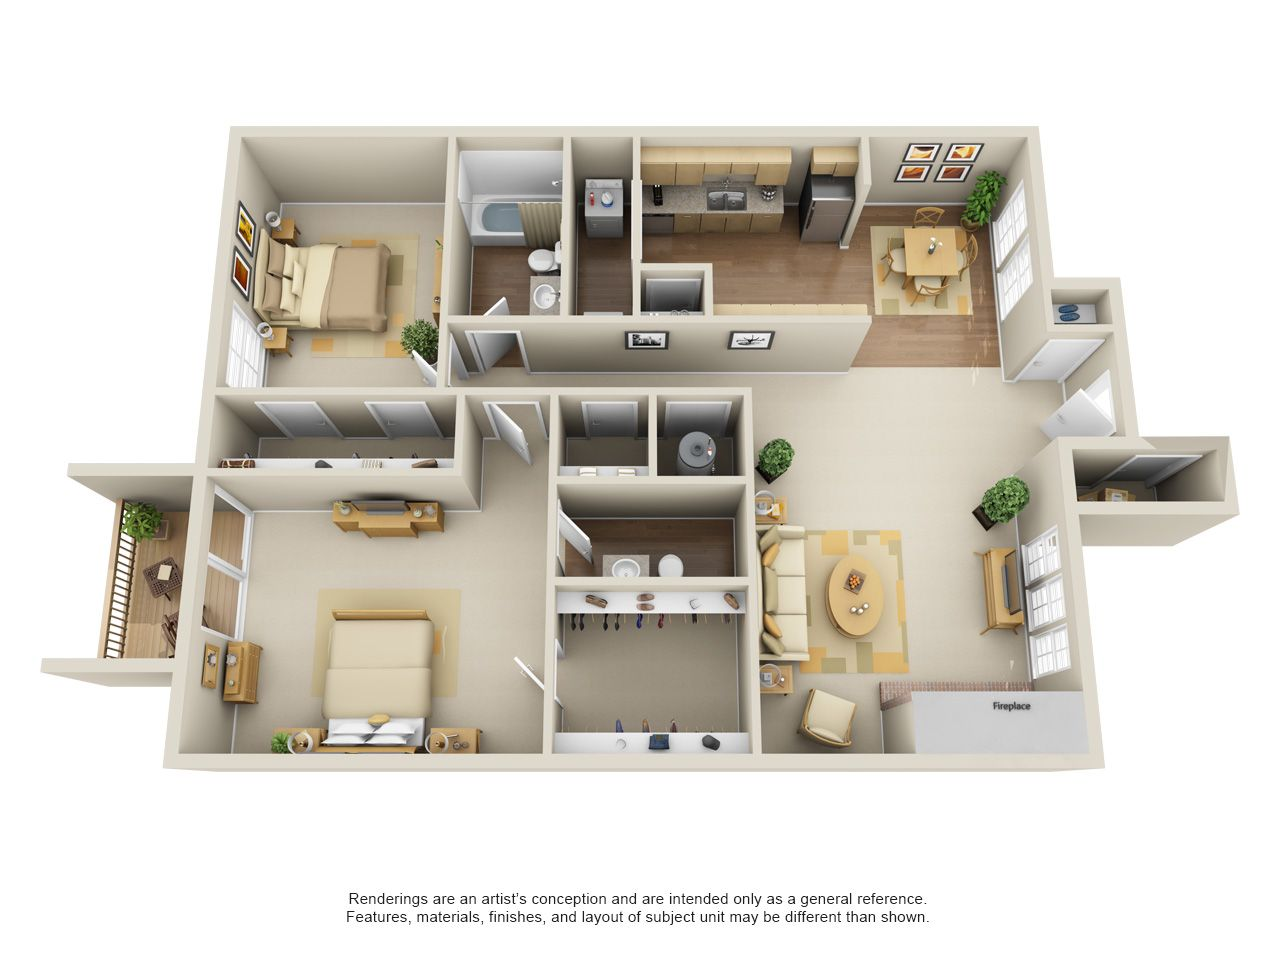 One Two Three Bedroom Apartments In Edmond Ok Edmond Oklahoma Apartment Steadfast Apartment Layout House Plans Bedroom House Plans